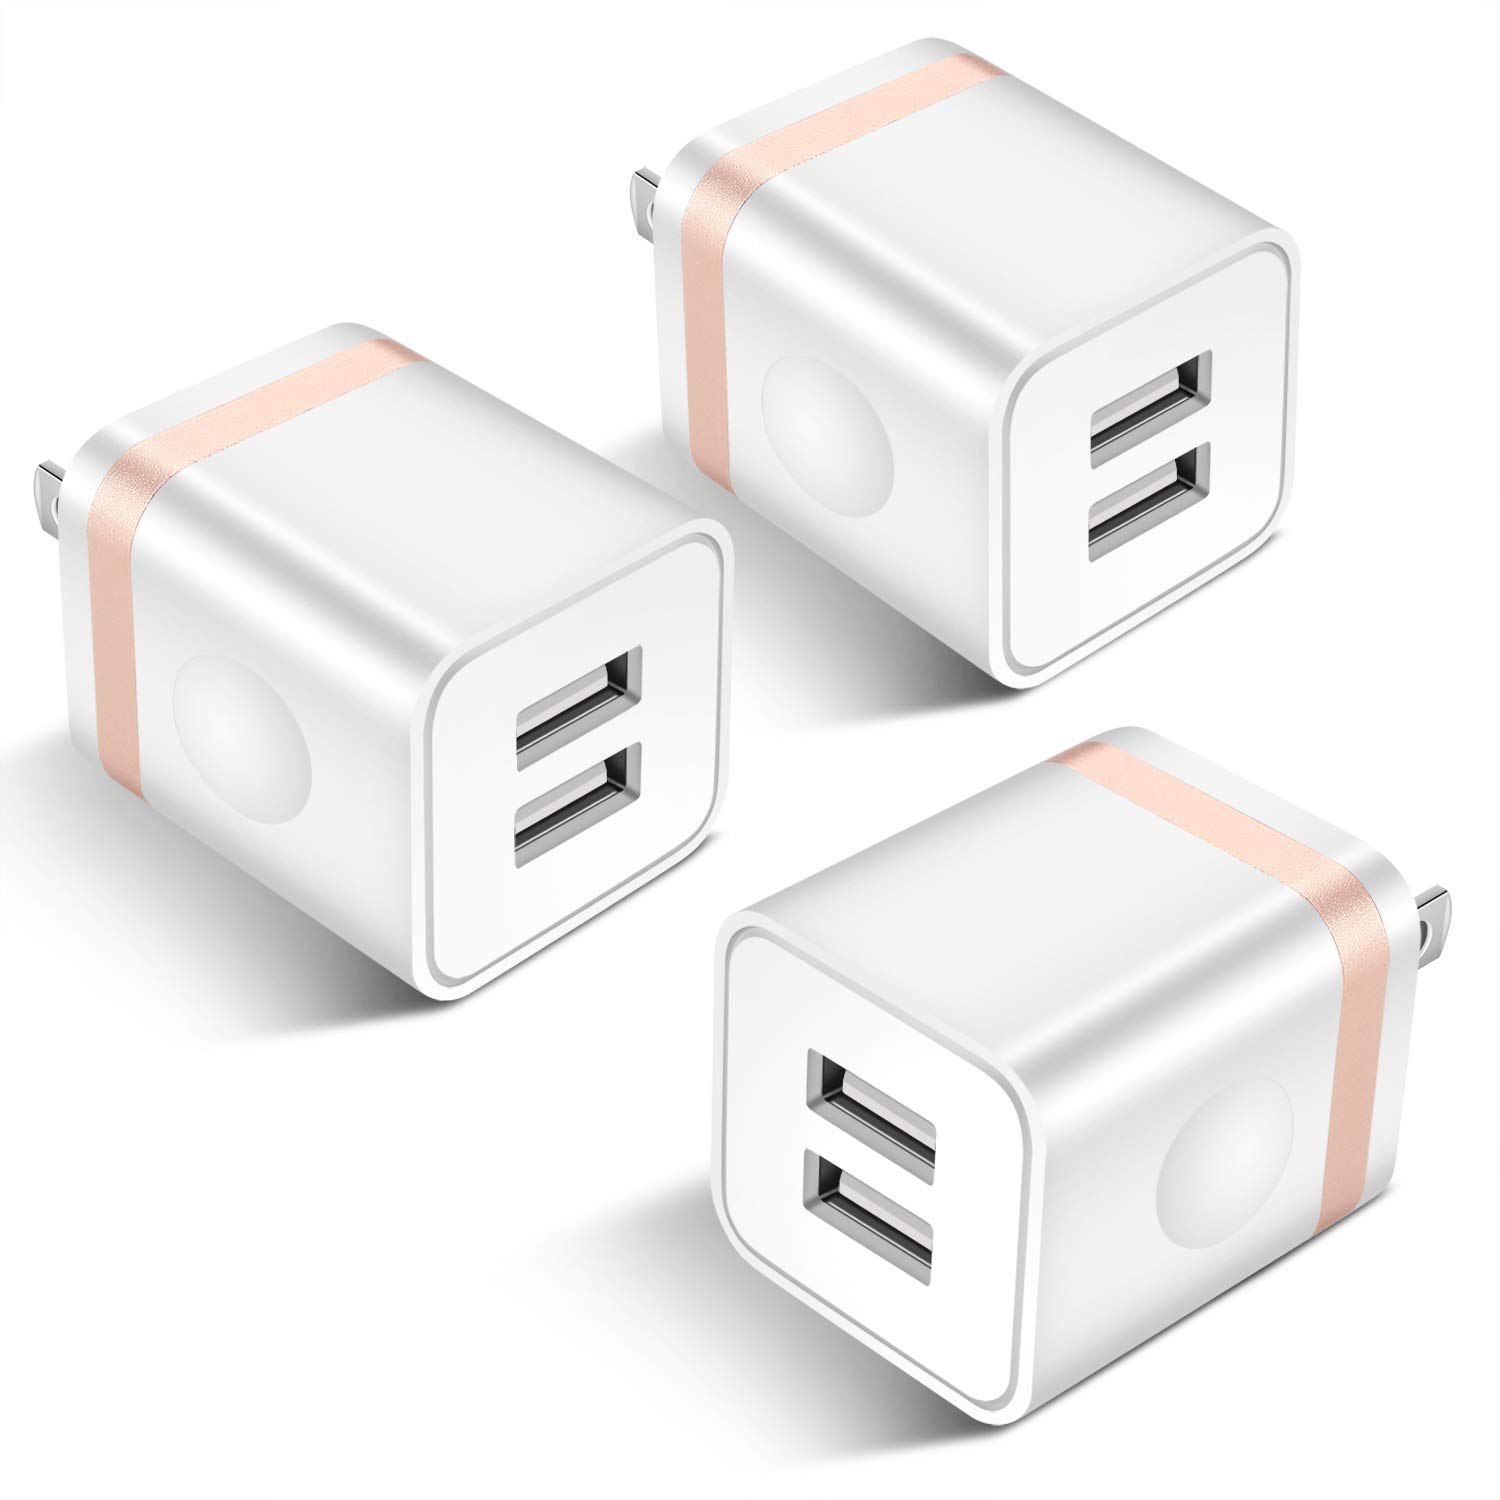 ARCCRA USB Wall Charger, 3-Pack 2.1A Dual Port USB Power Adapter Wall Charger Plug Charging Block Cube Compatible with Phone Xs Max/Xs/XR/X/8/7/6 Plus/5S/4S, Samsung, LG, Kindle, Android Phone -White